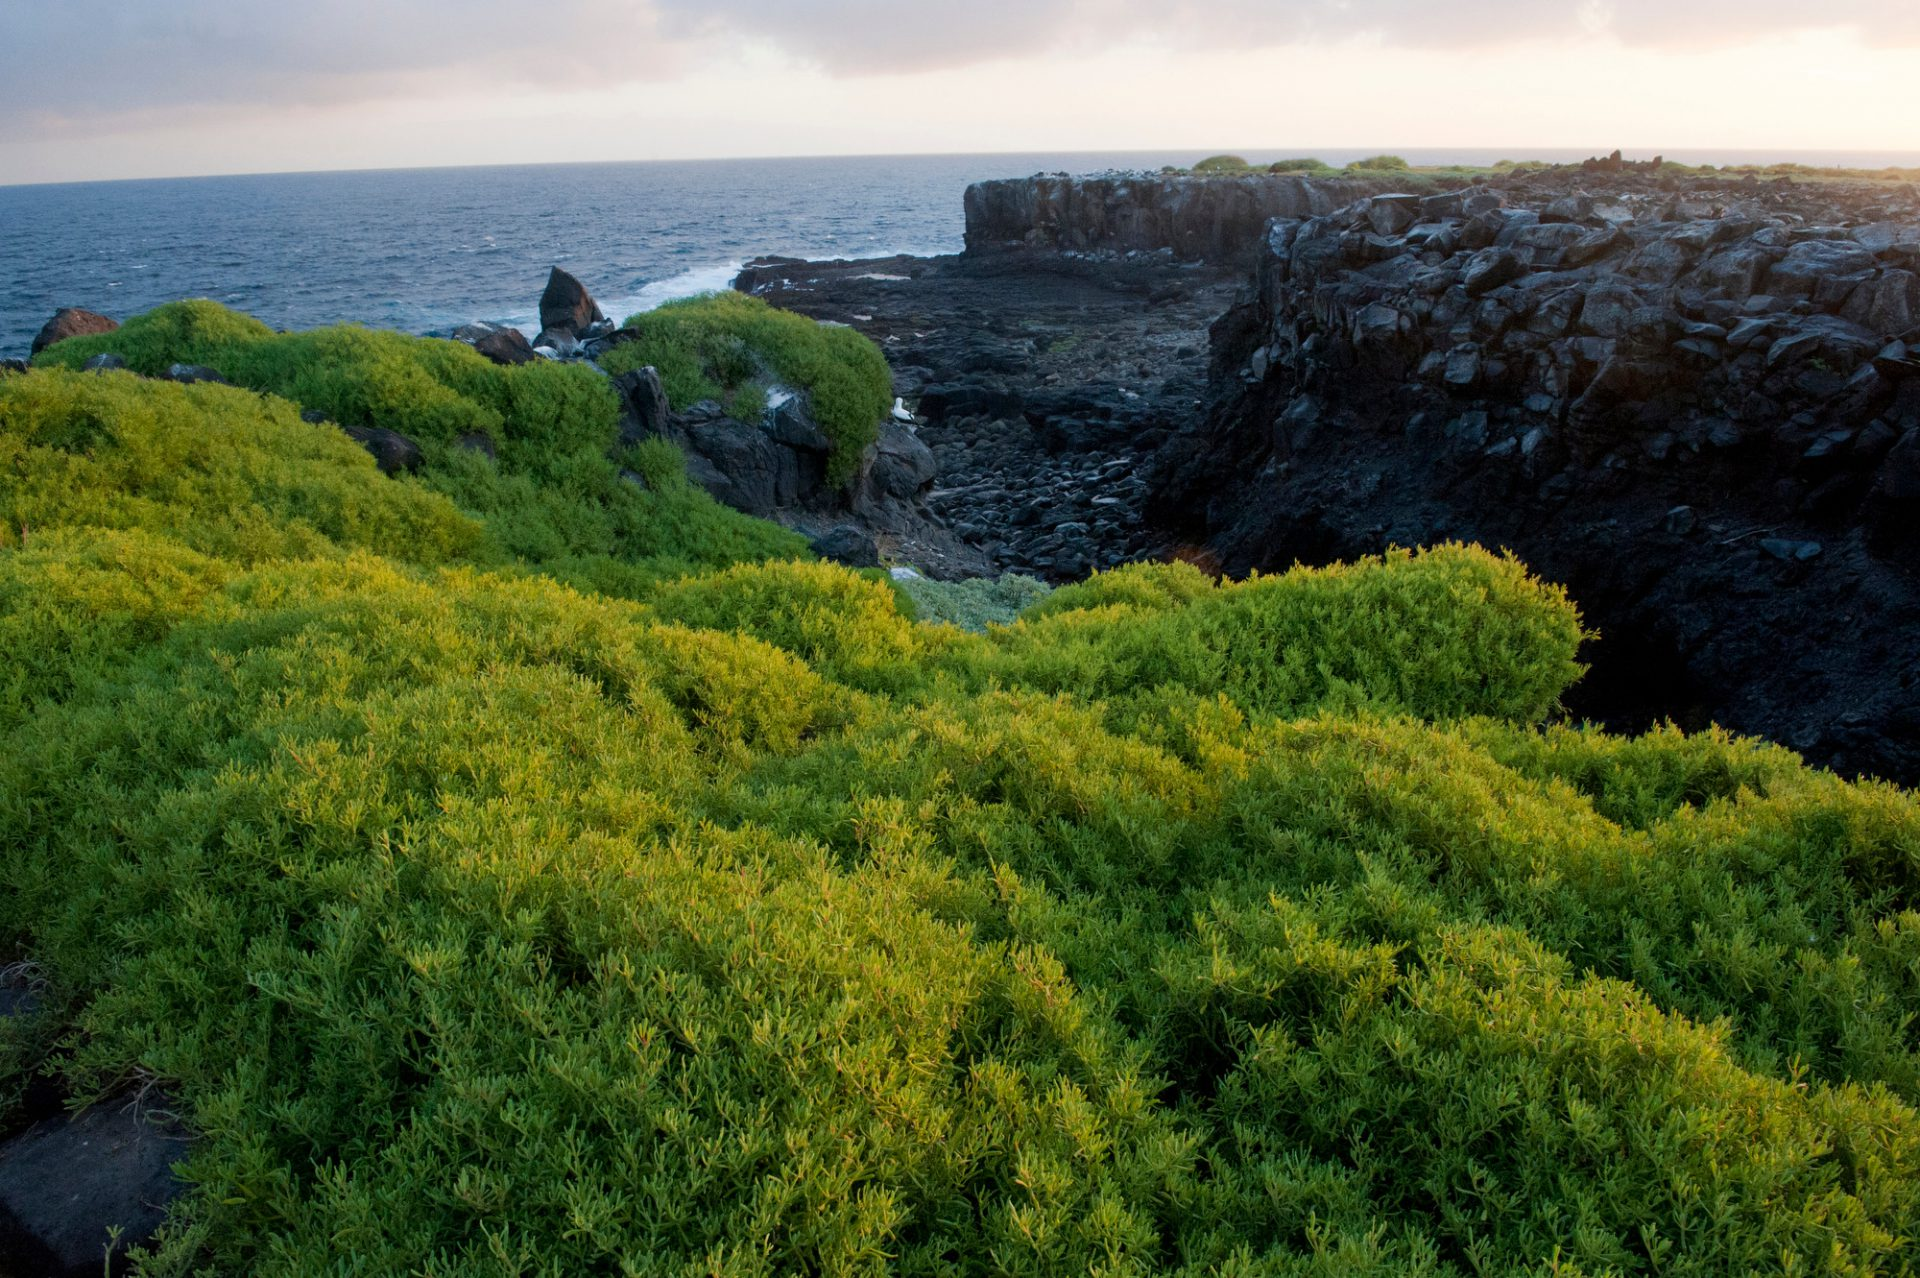 Photo: A scenic of Espanola Island in Galapagos National Park.